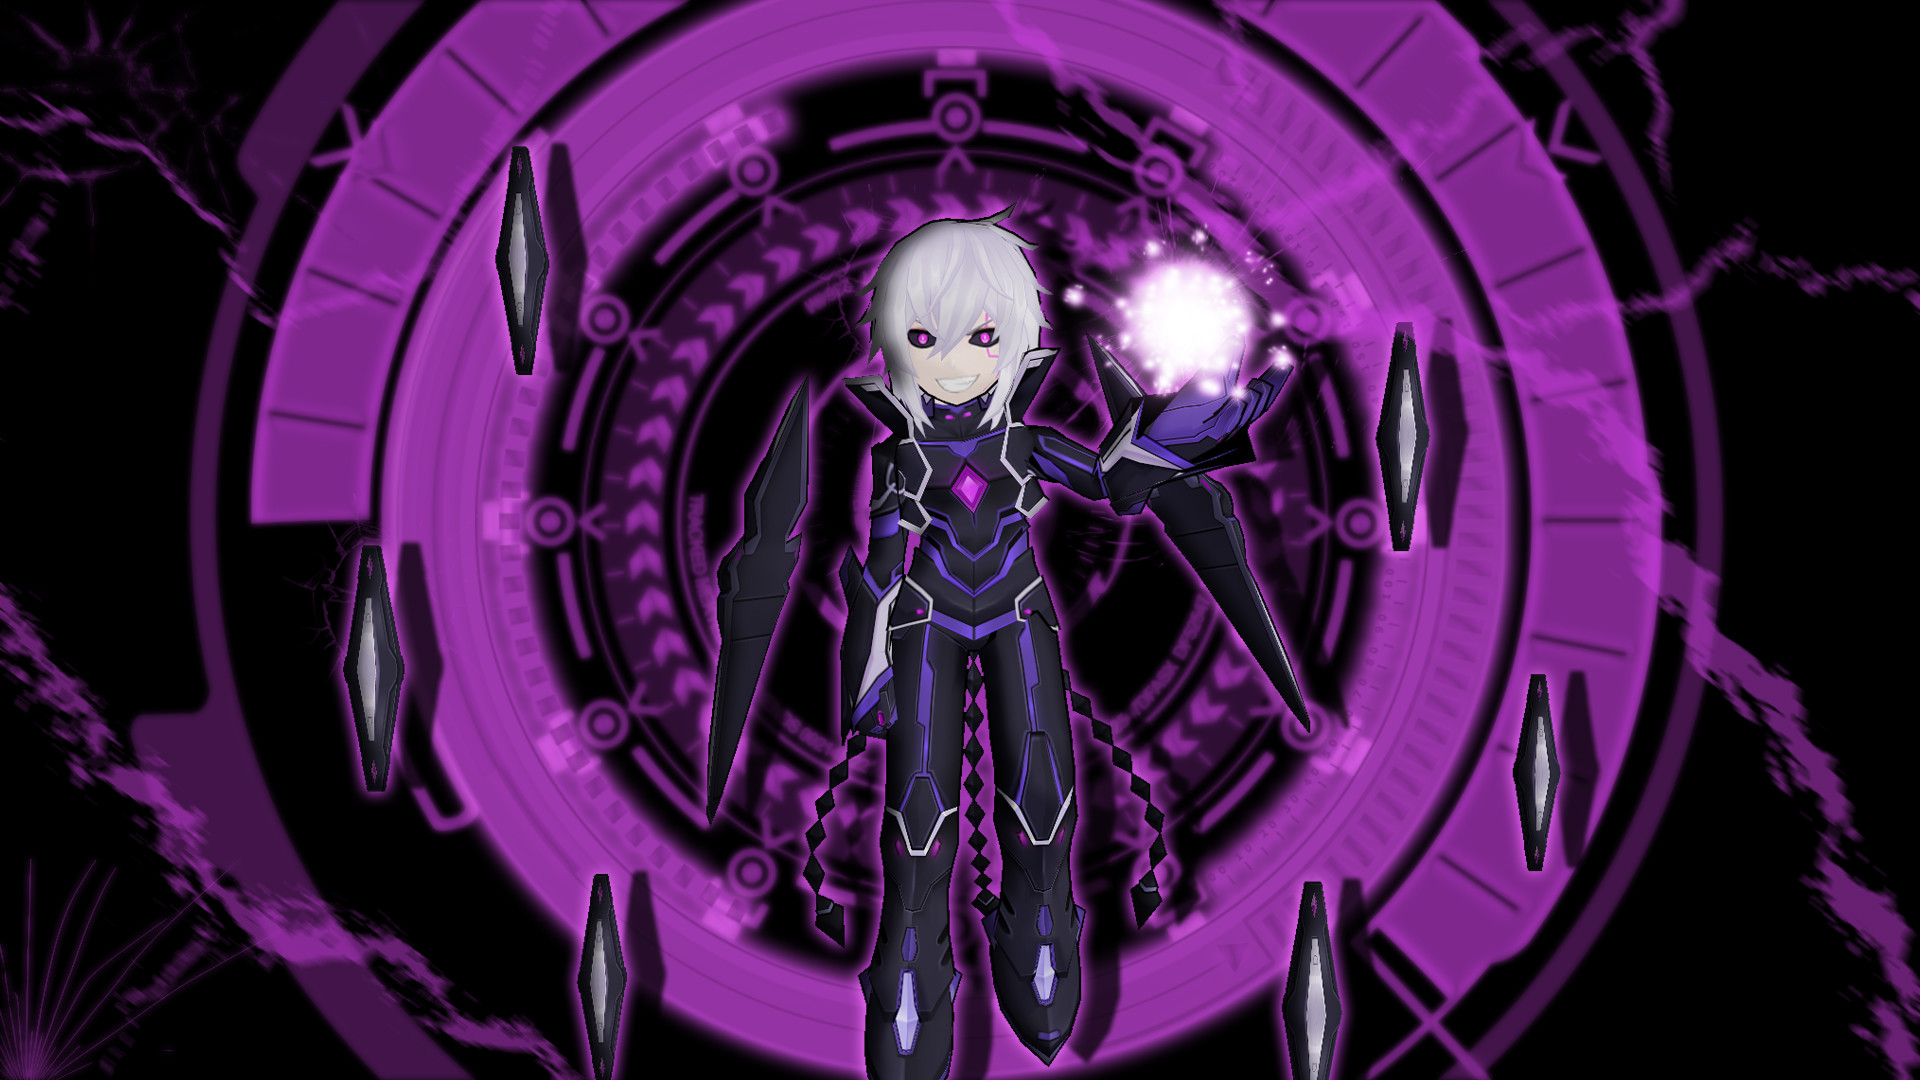 1920x1080 ... Elsword: Add diabolic Esper model wallpaper by DiabolicTurkey